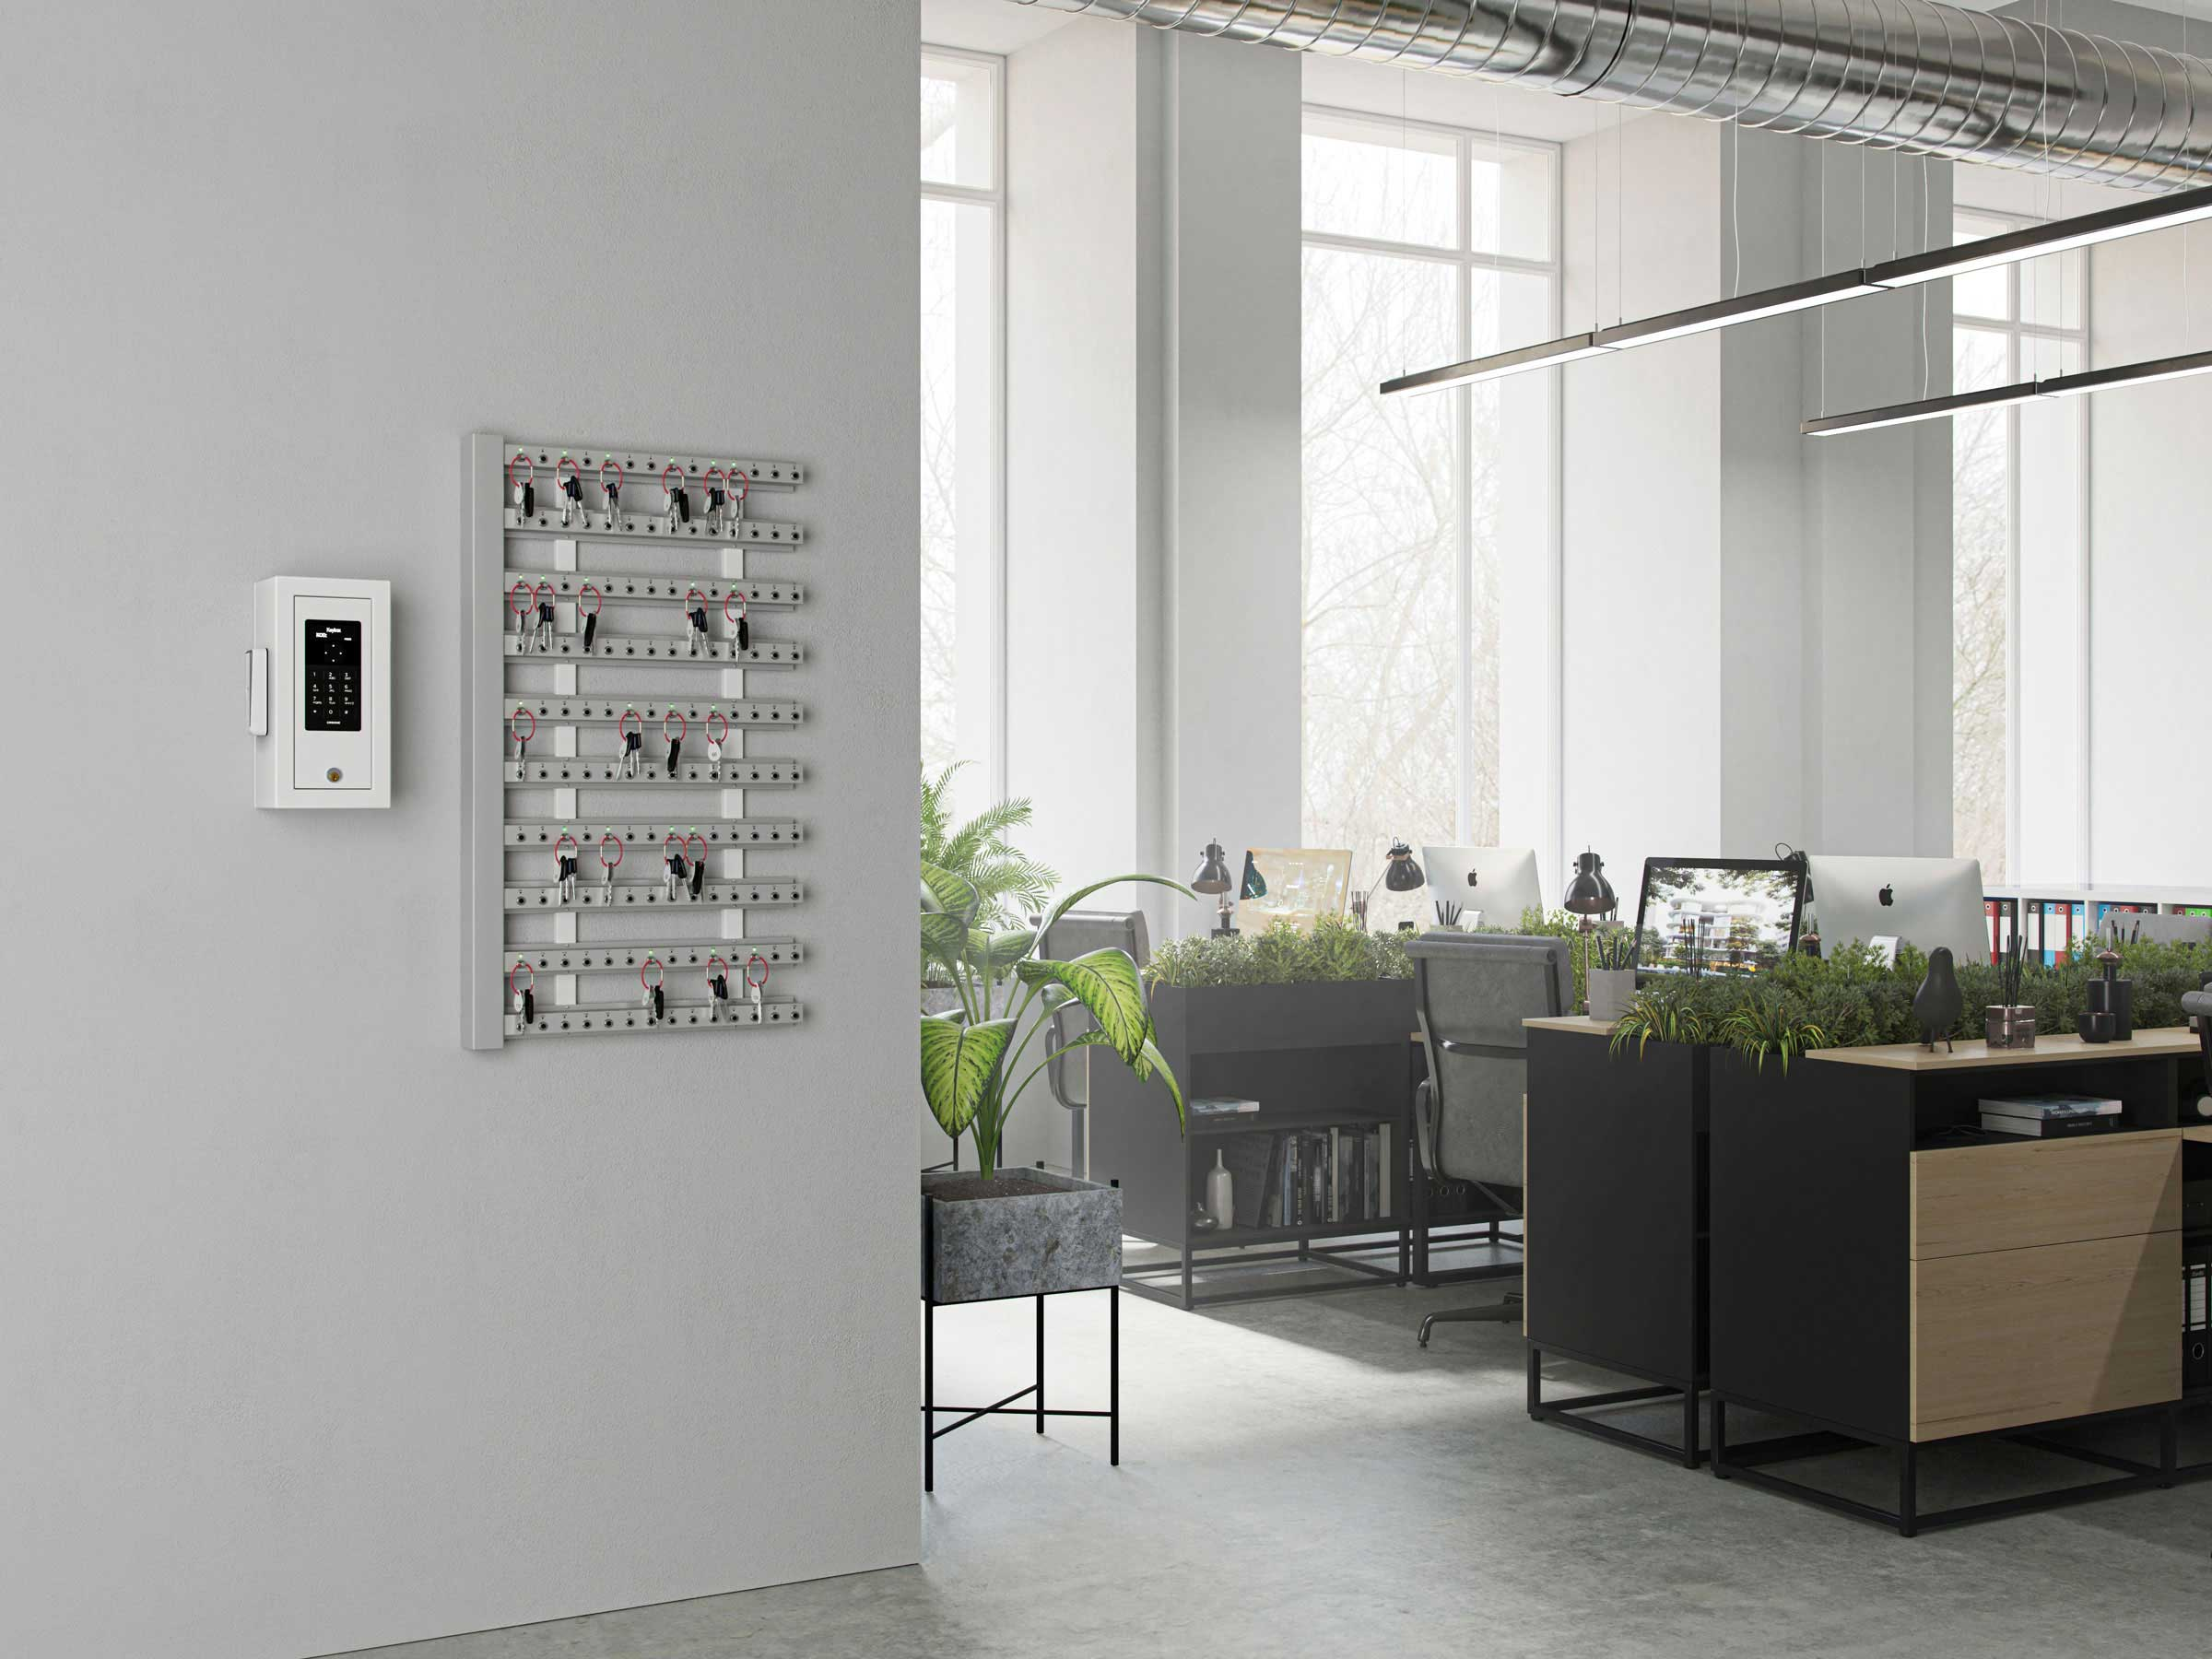 10 intelligent key strips with control box mounted on the wall and key cabinet for a unique key management.